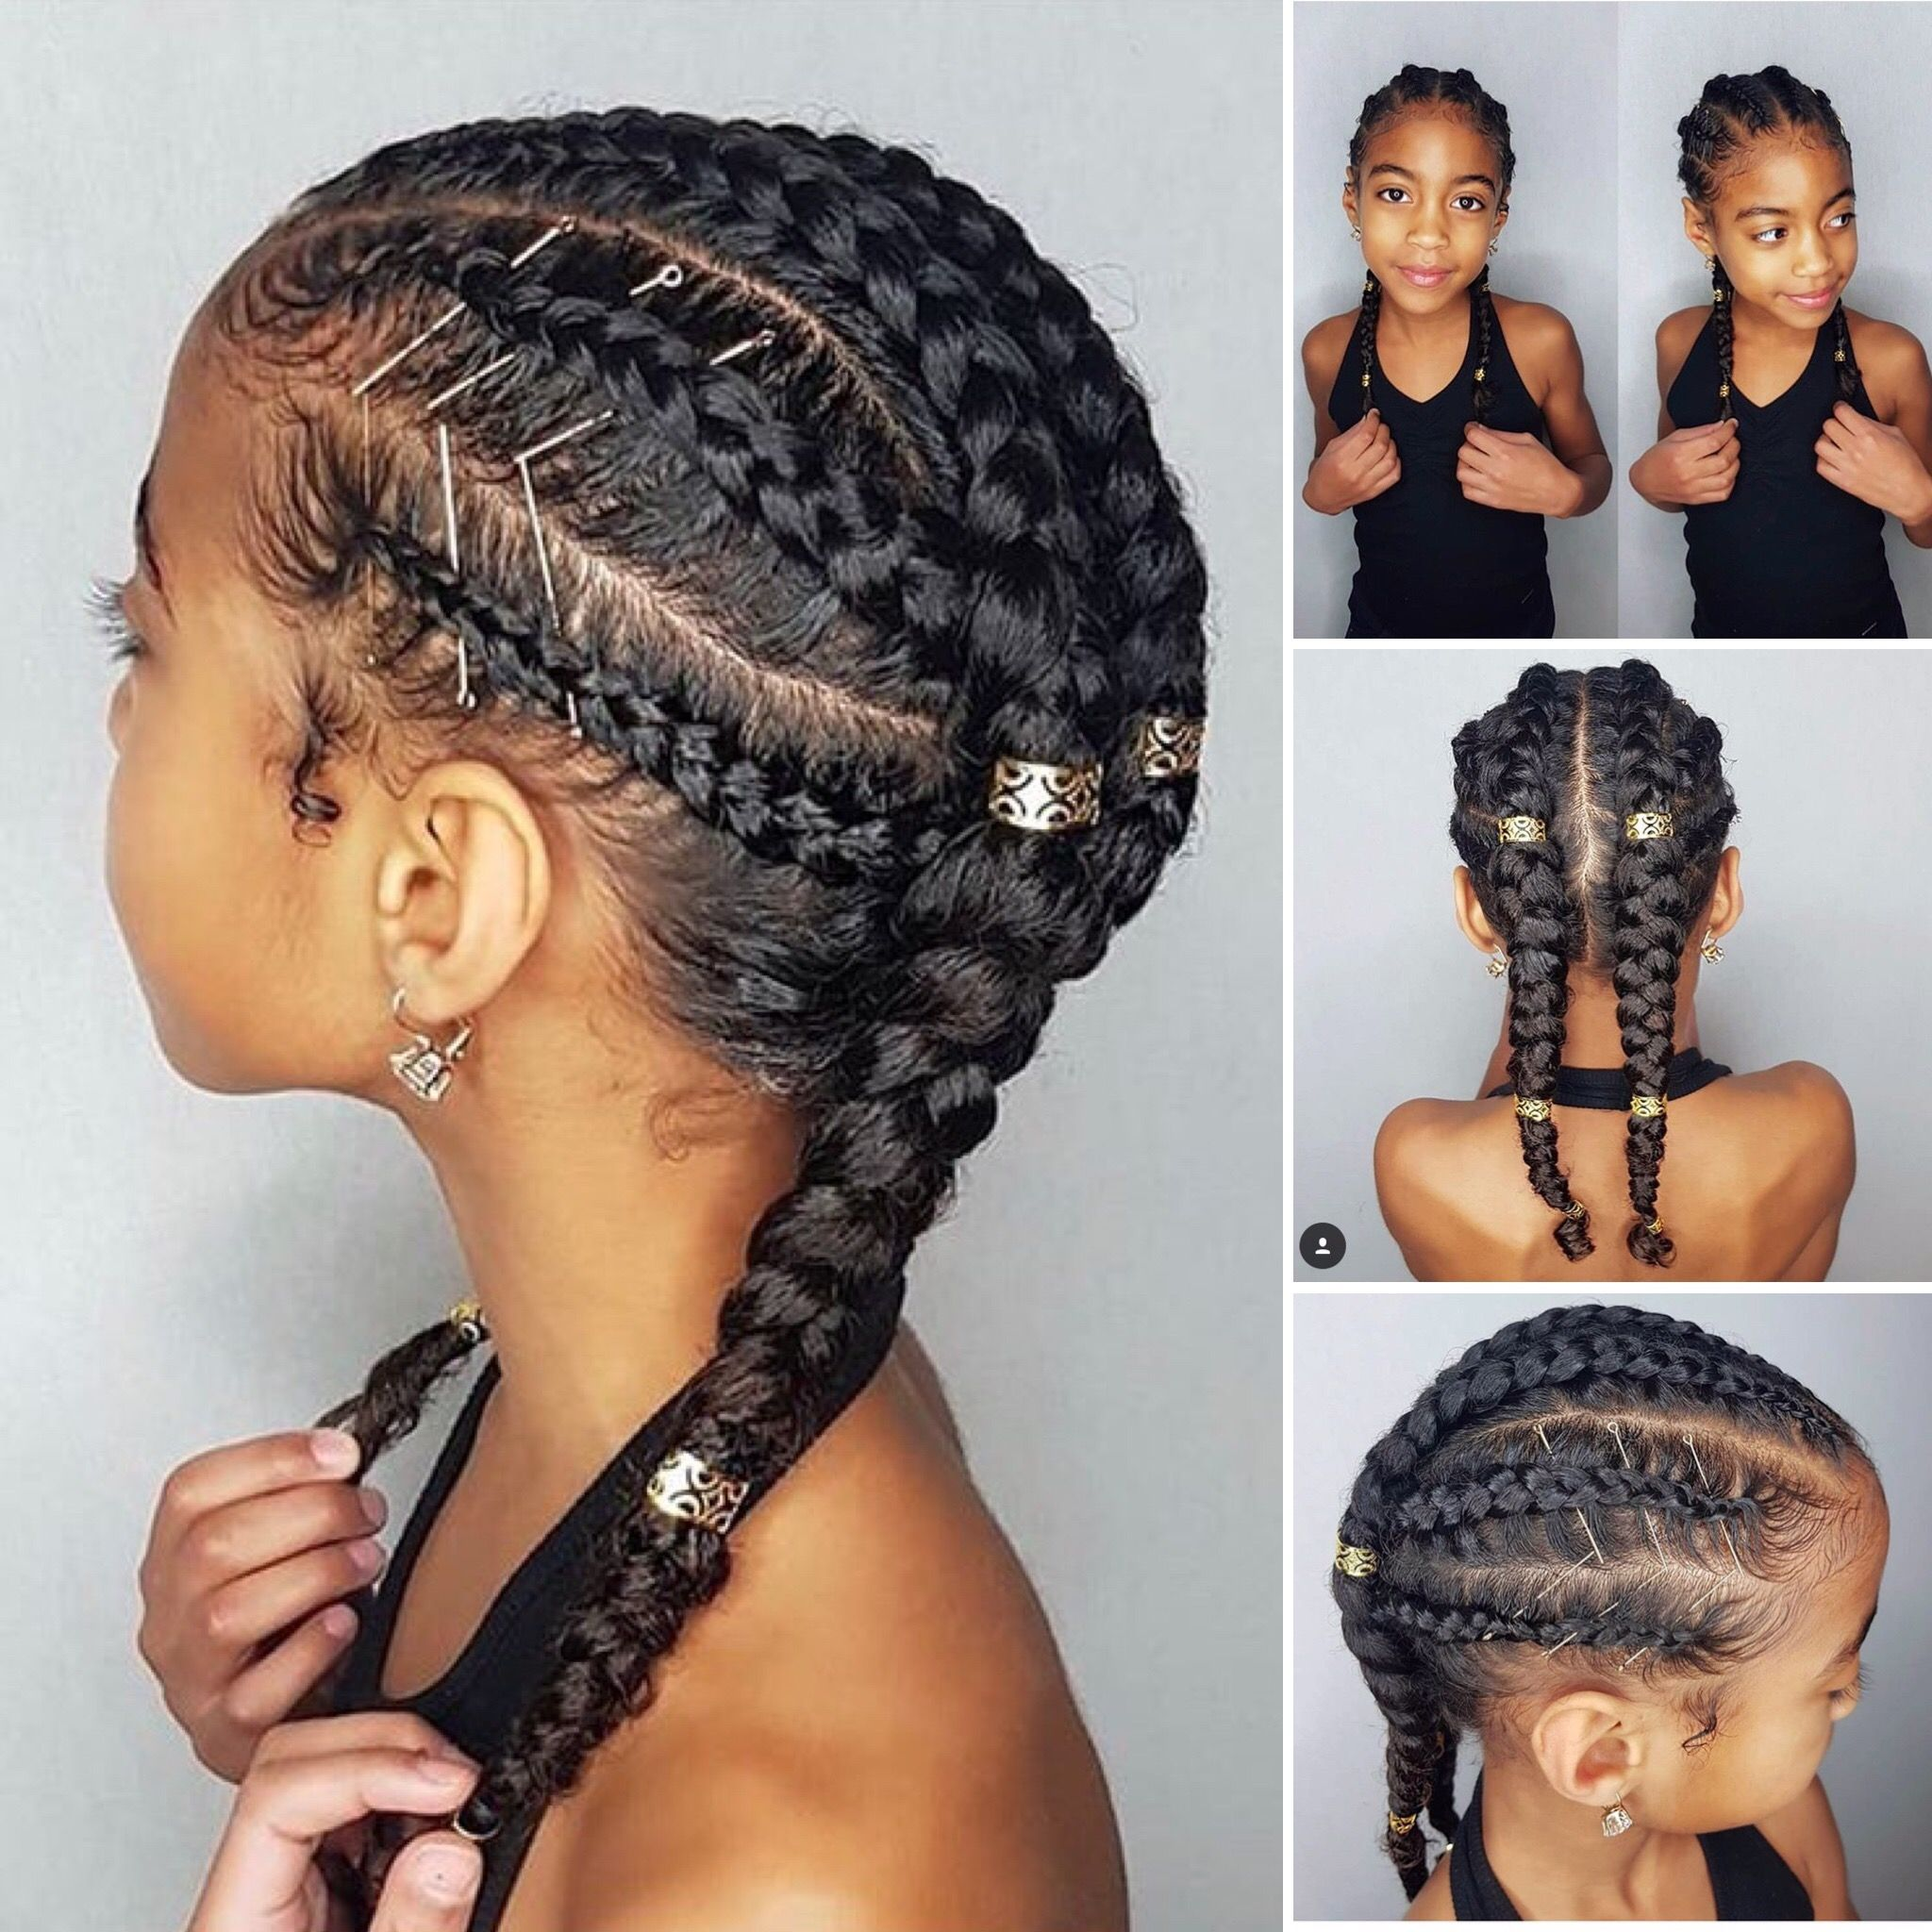 Braided Hairstyles For Girls